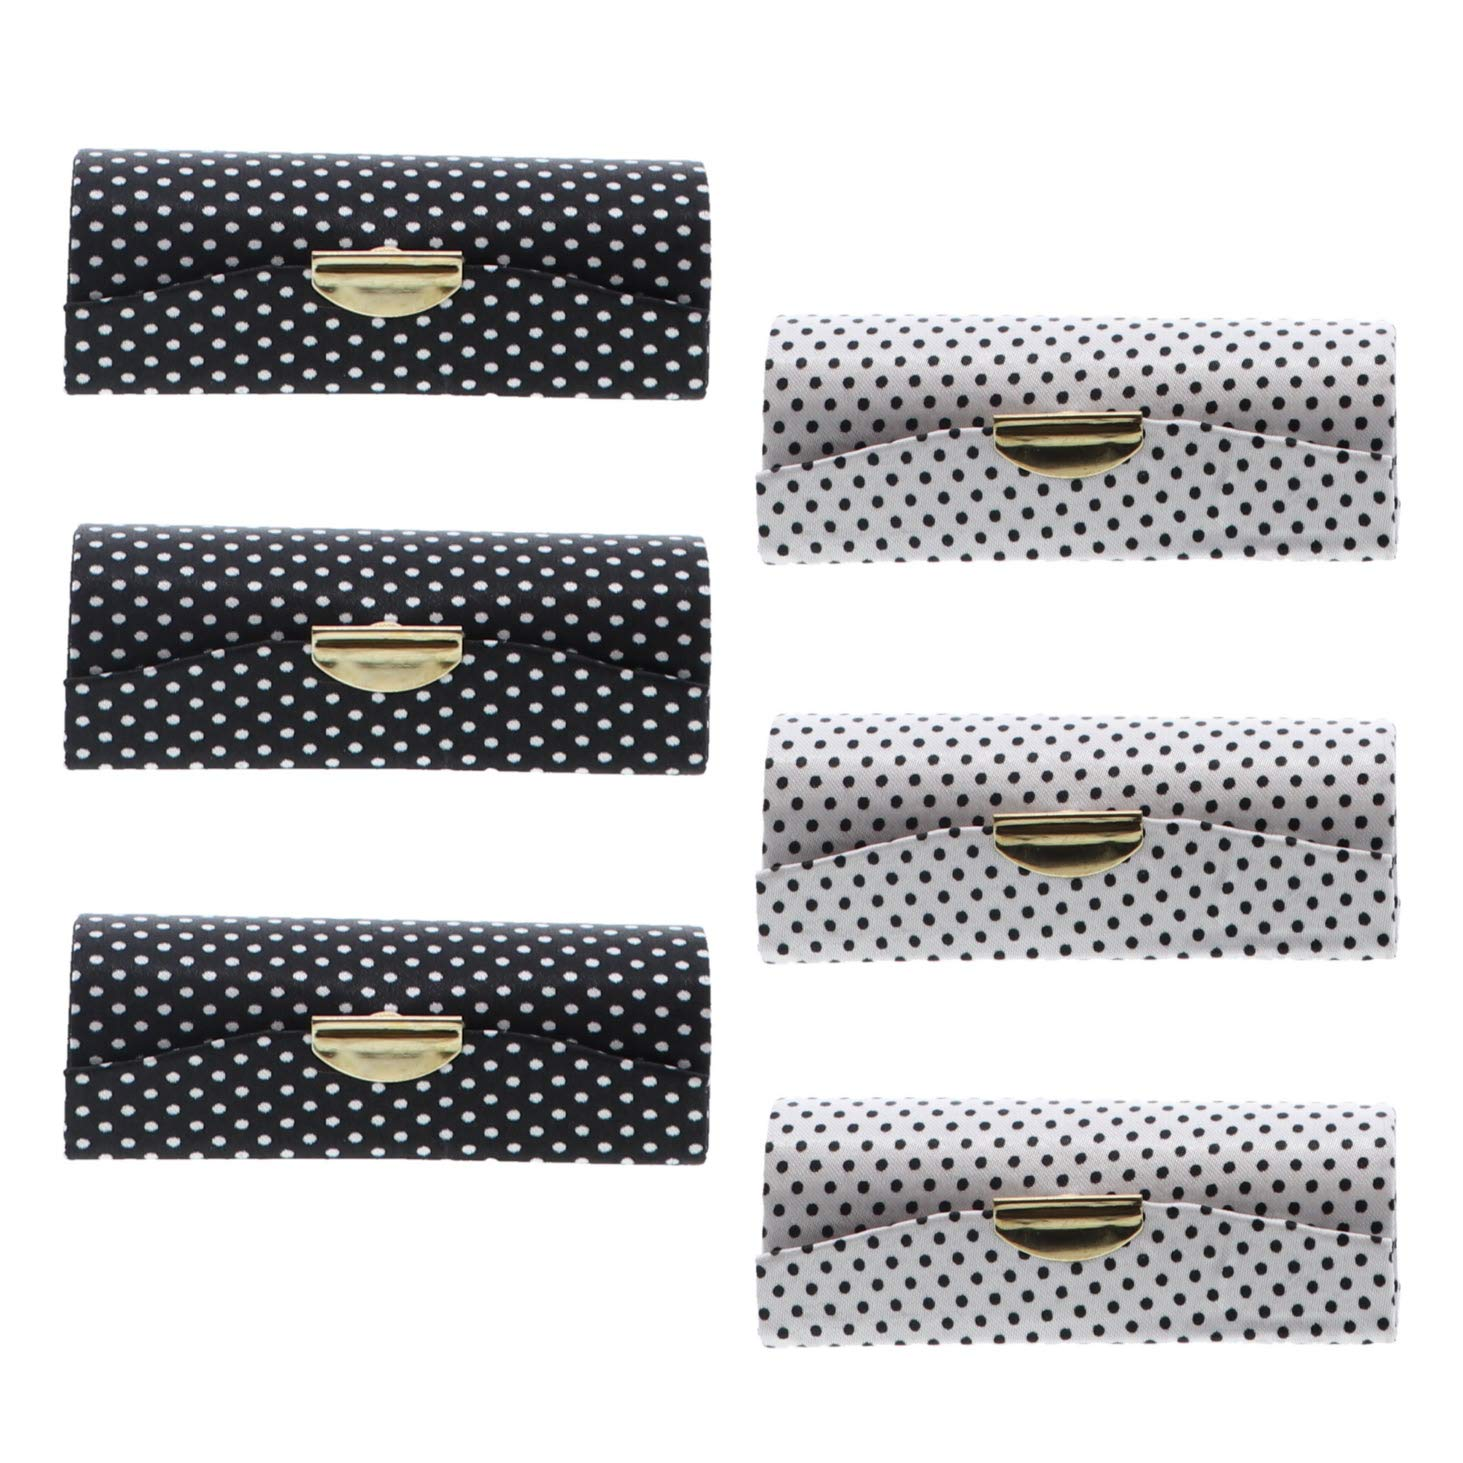 Black & White Ladies Polka Dot Lipstick Case With Mirror Set of 6